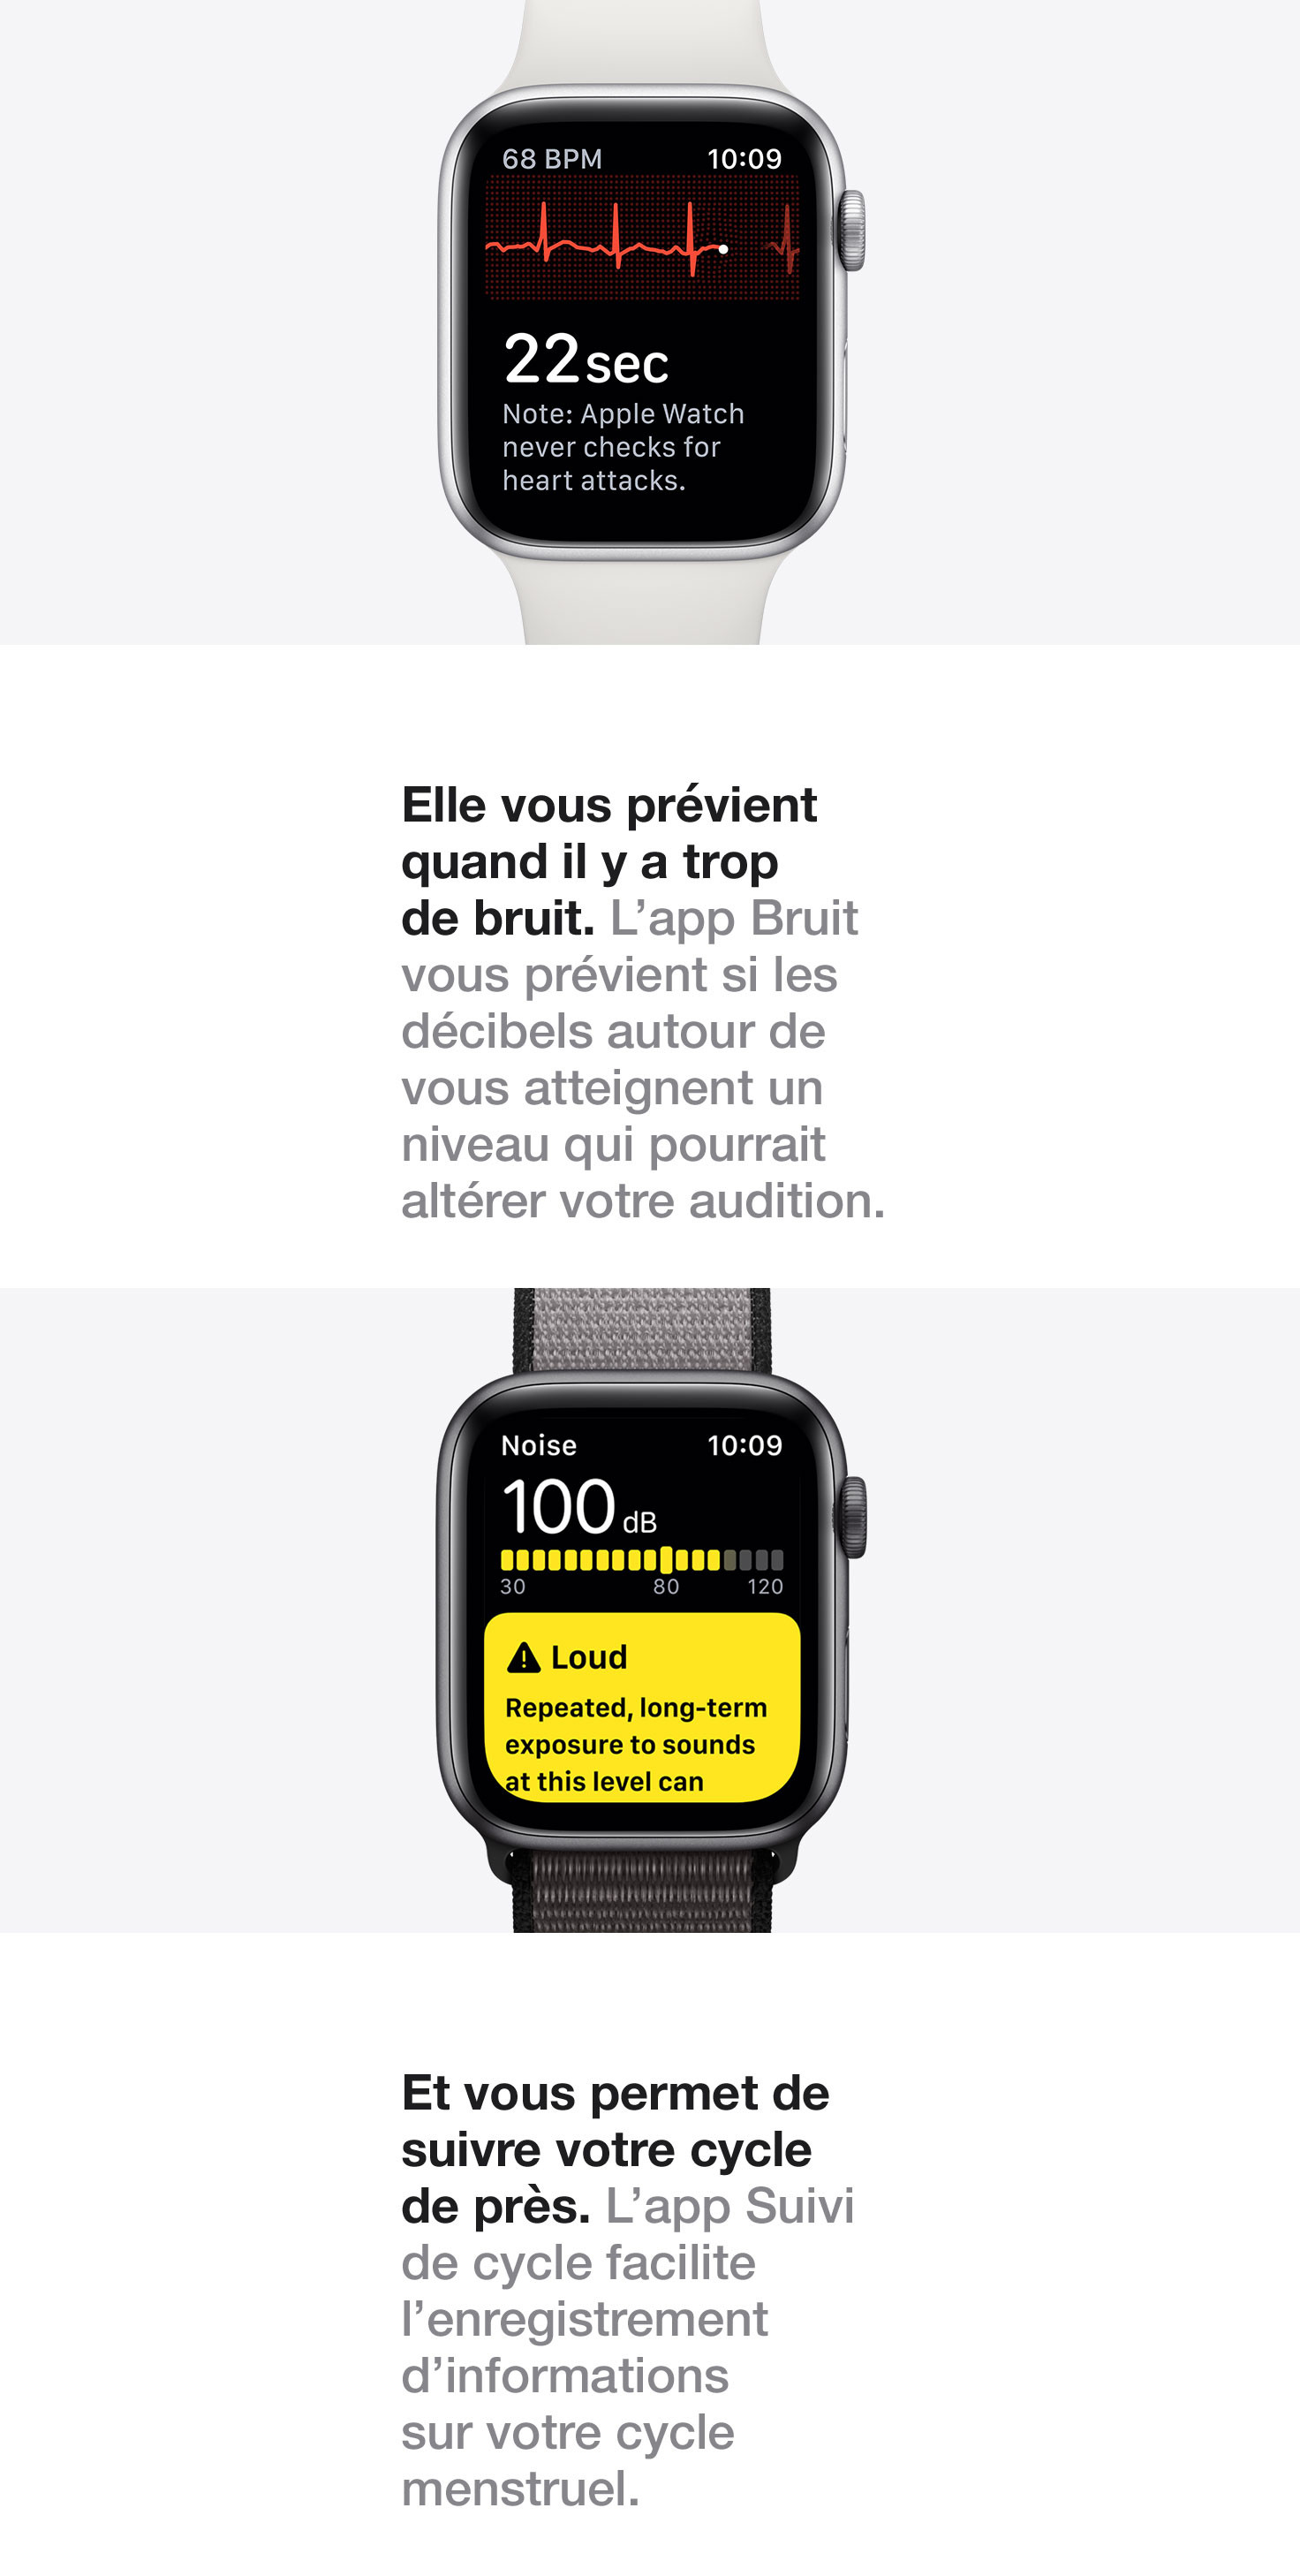 AppleWatchSeries5-productpage_fr-mobile_03.jpg